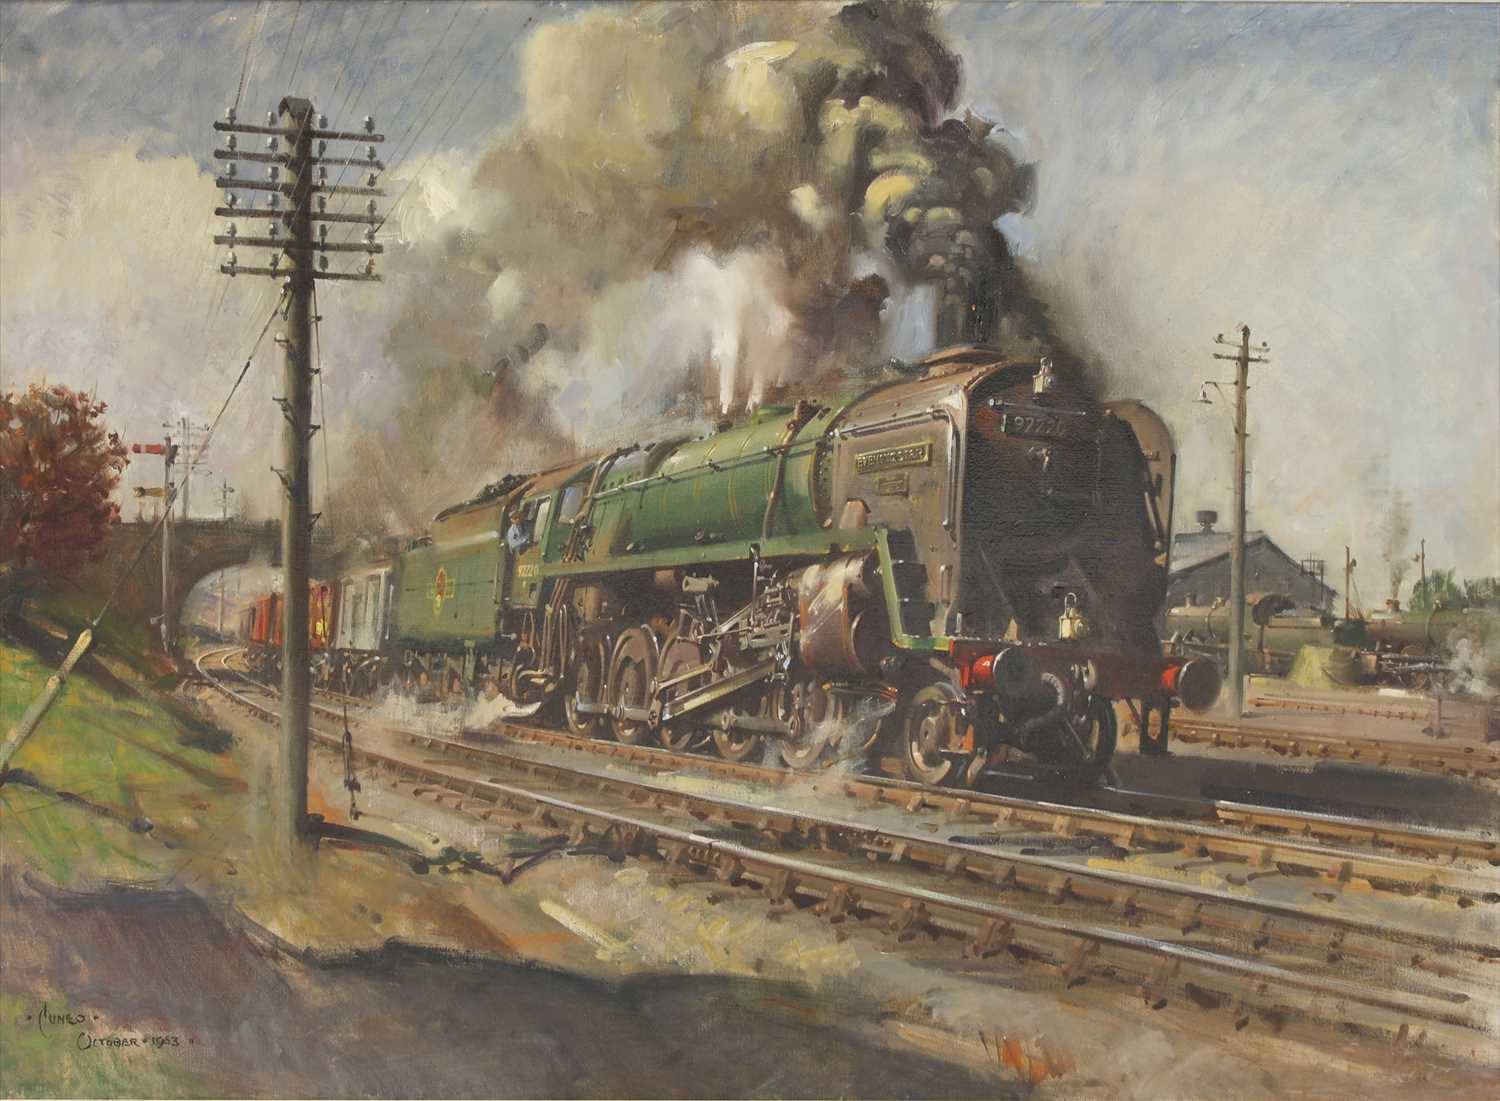 512 - *Terence Cuneo (1907-1996)